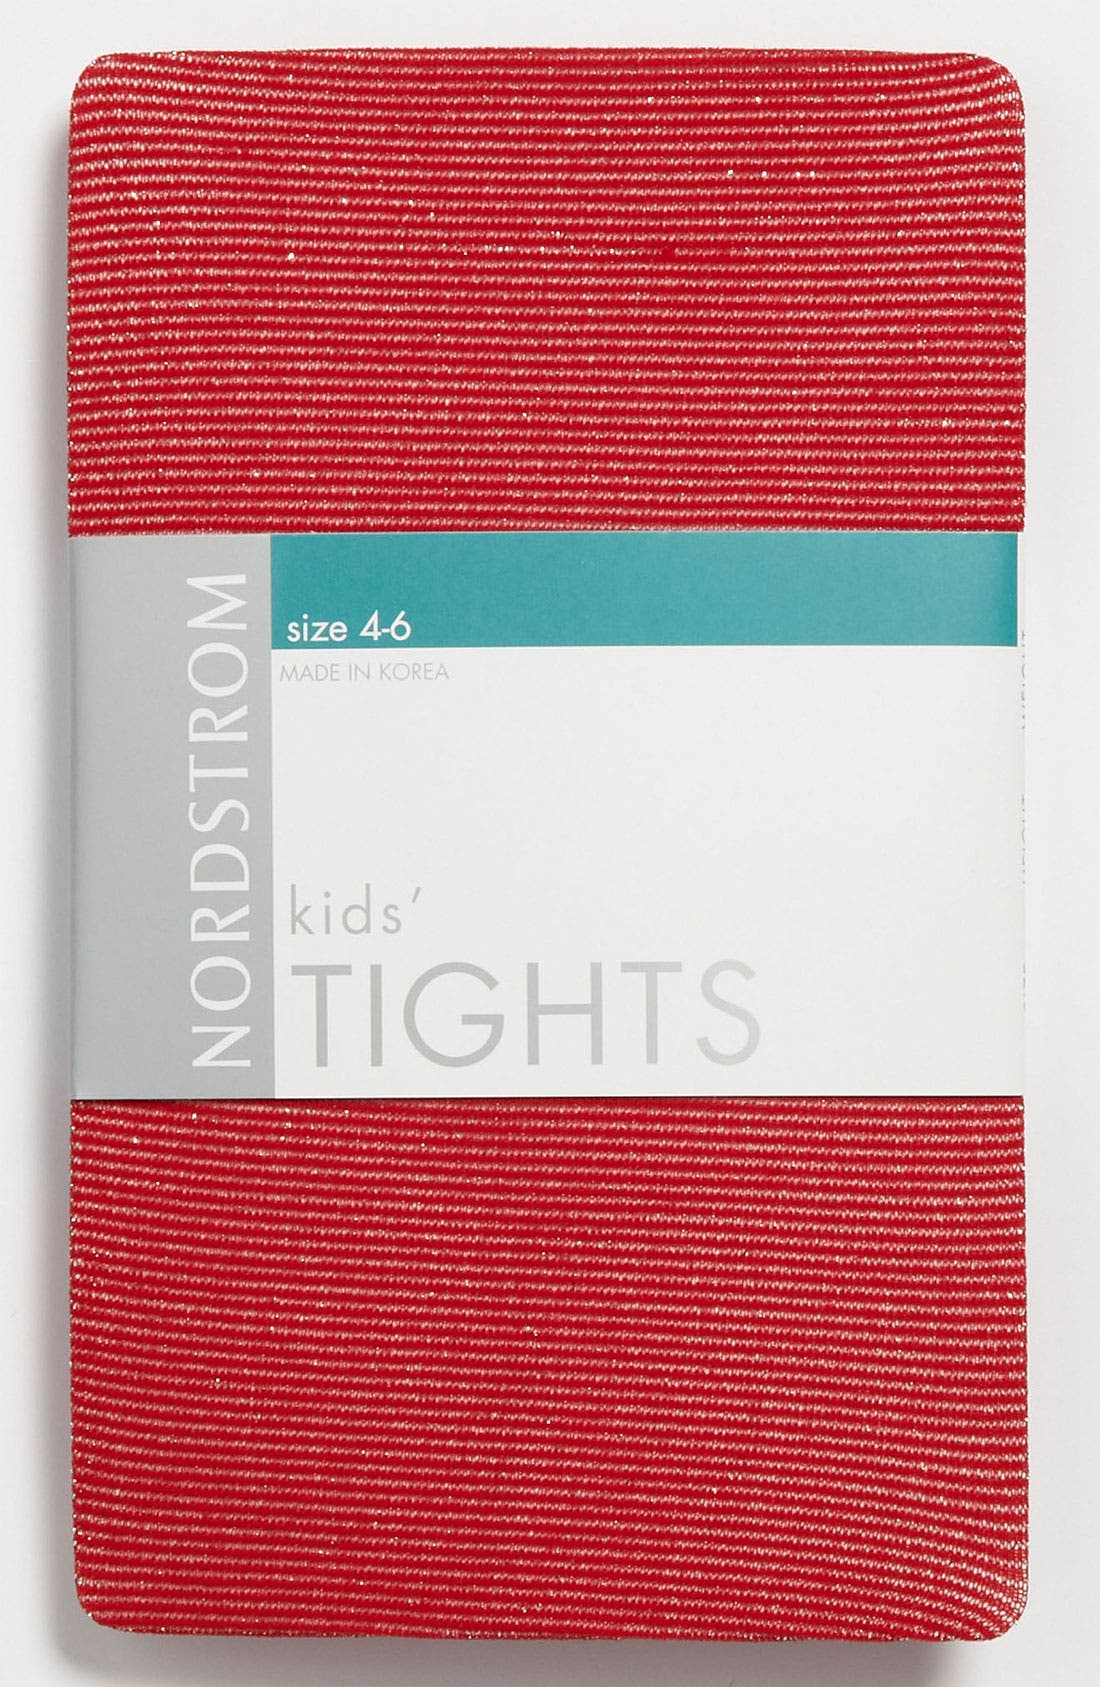 Alternate Image 1 Selected - Nordstrom 'Sparkle Stripe' Tights (Girls)